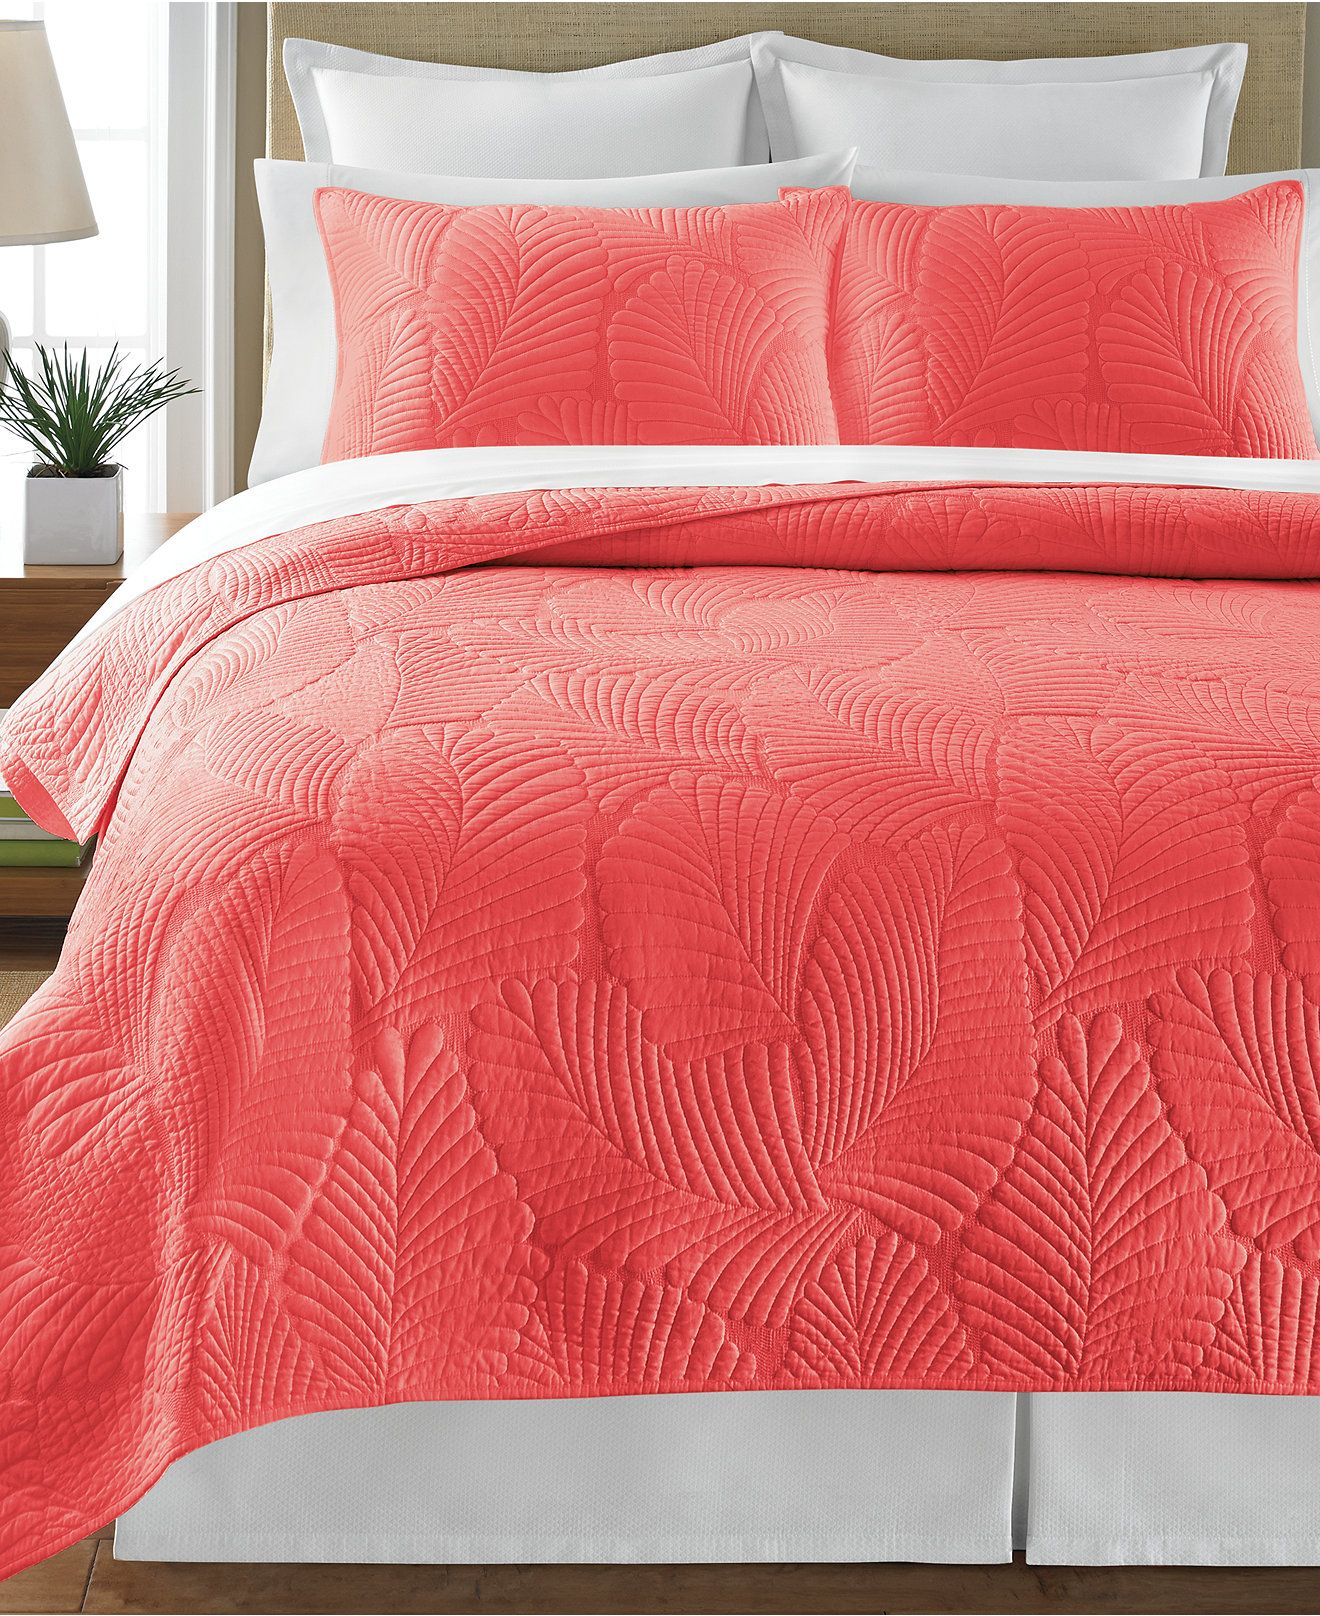 Martha Stewart Collection Atlantic Palm Coral Quilts - Quilts ... : coral quilts - Adamdwight.com